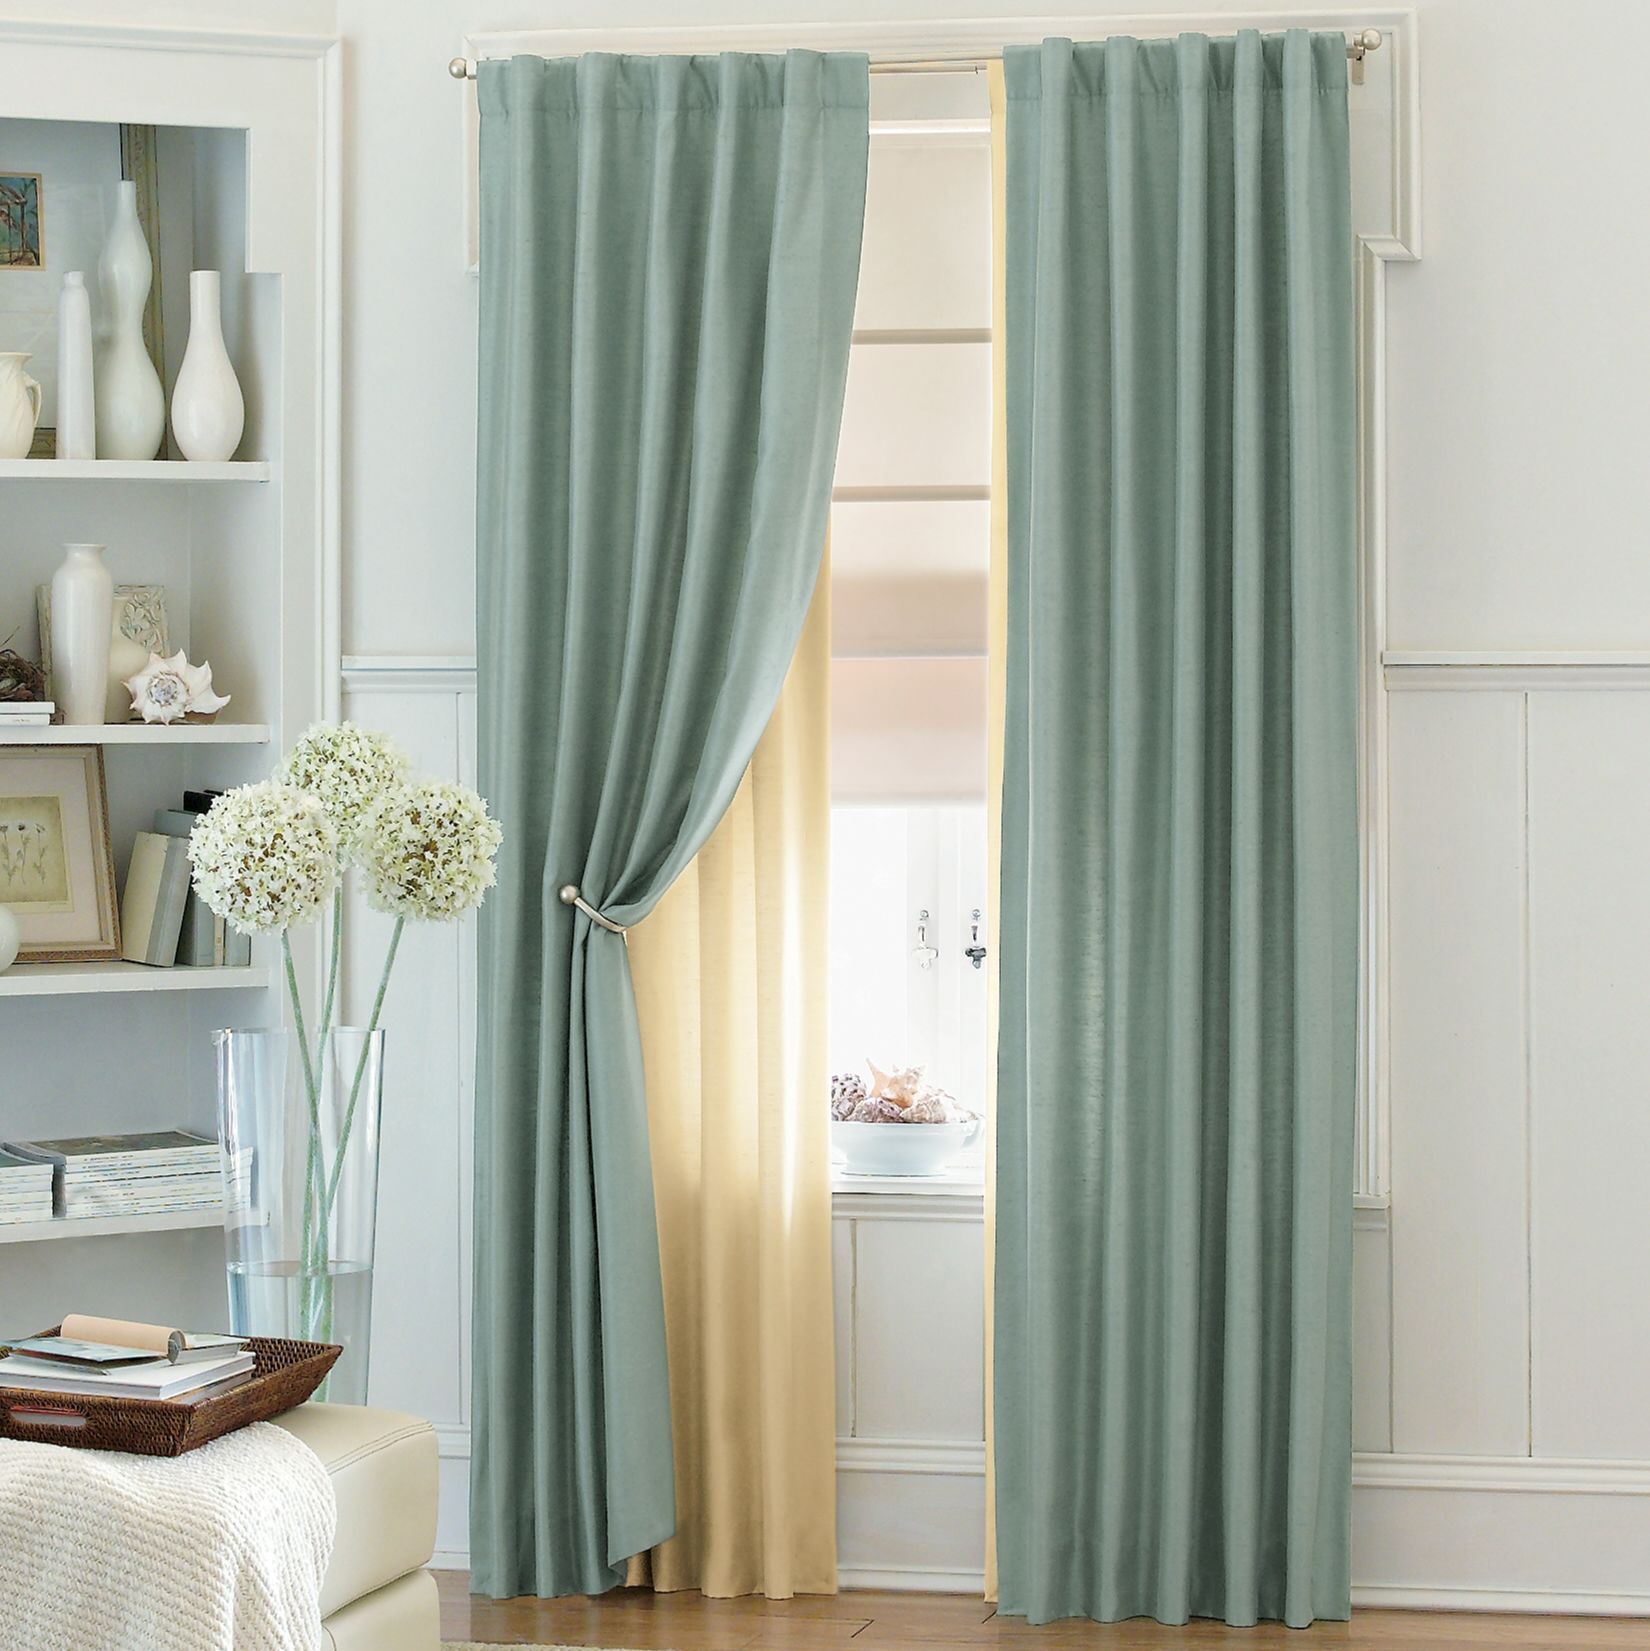 curtains living rooms bedroom windows bedroom drapes canopy bed drapes